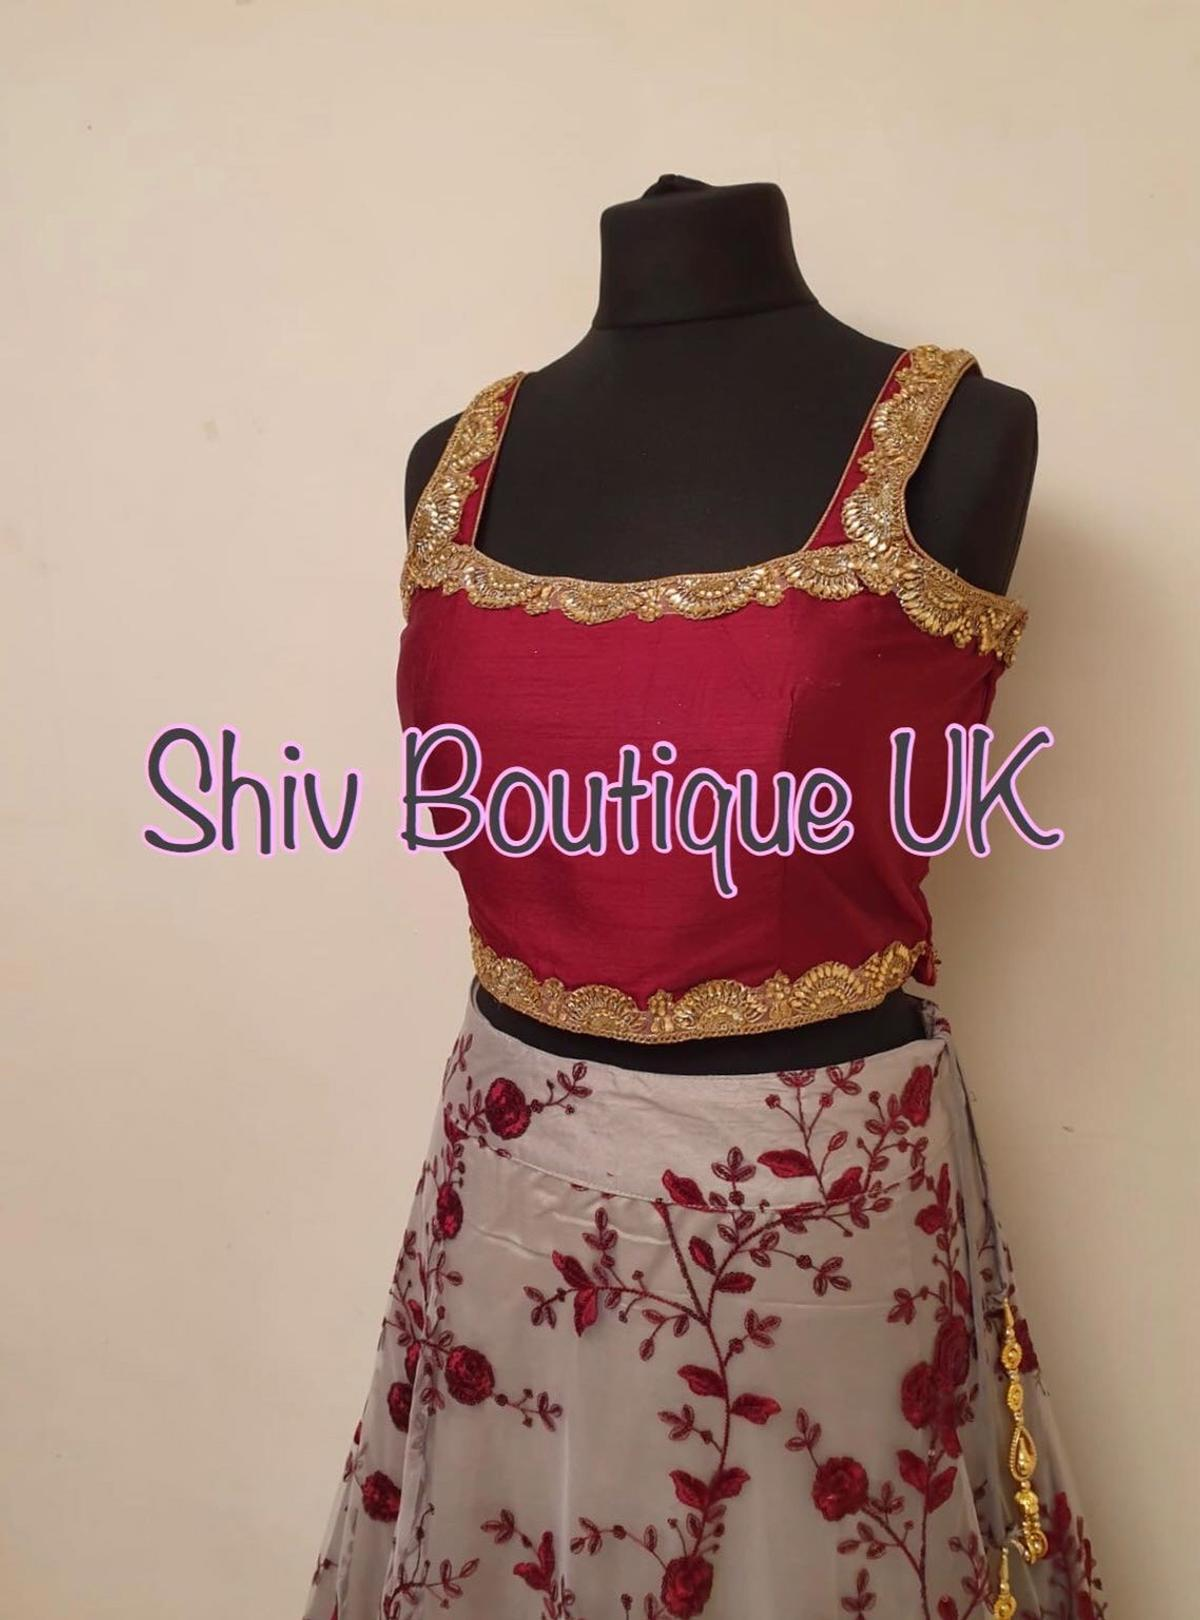 "Brand new Ready made Indian Asian Lehenga Lengha Choli  Top: Chest 40"" (+4"" extra material inside) Length 16"" Comes with 16"" length sleeves (material)  Skirt: Waist 34"" Length 44""  #lengha #lehnga #lehenga #lehanga #indian #indian_dress #indian_suit #asian #punjabi #asianweddings #indianweddings #indiansuits #shivboutiqueuk #shiv_boutique_uk"